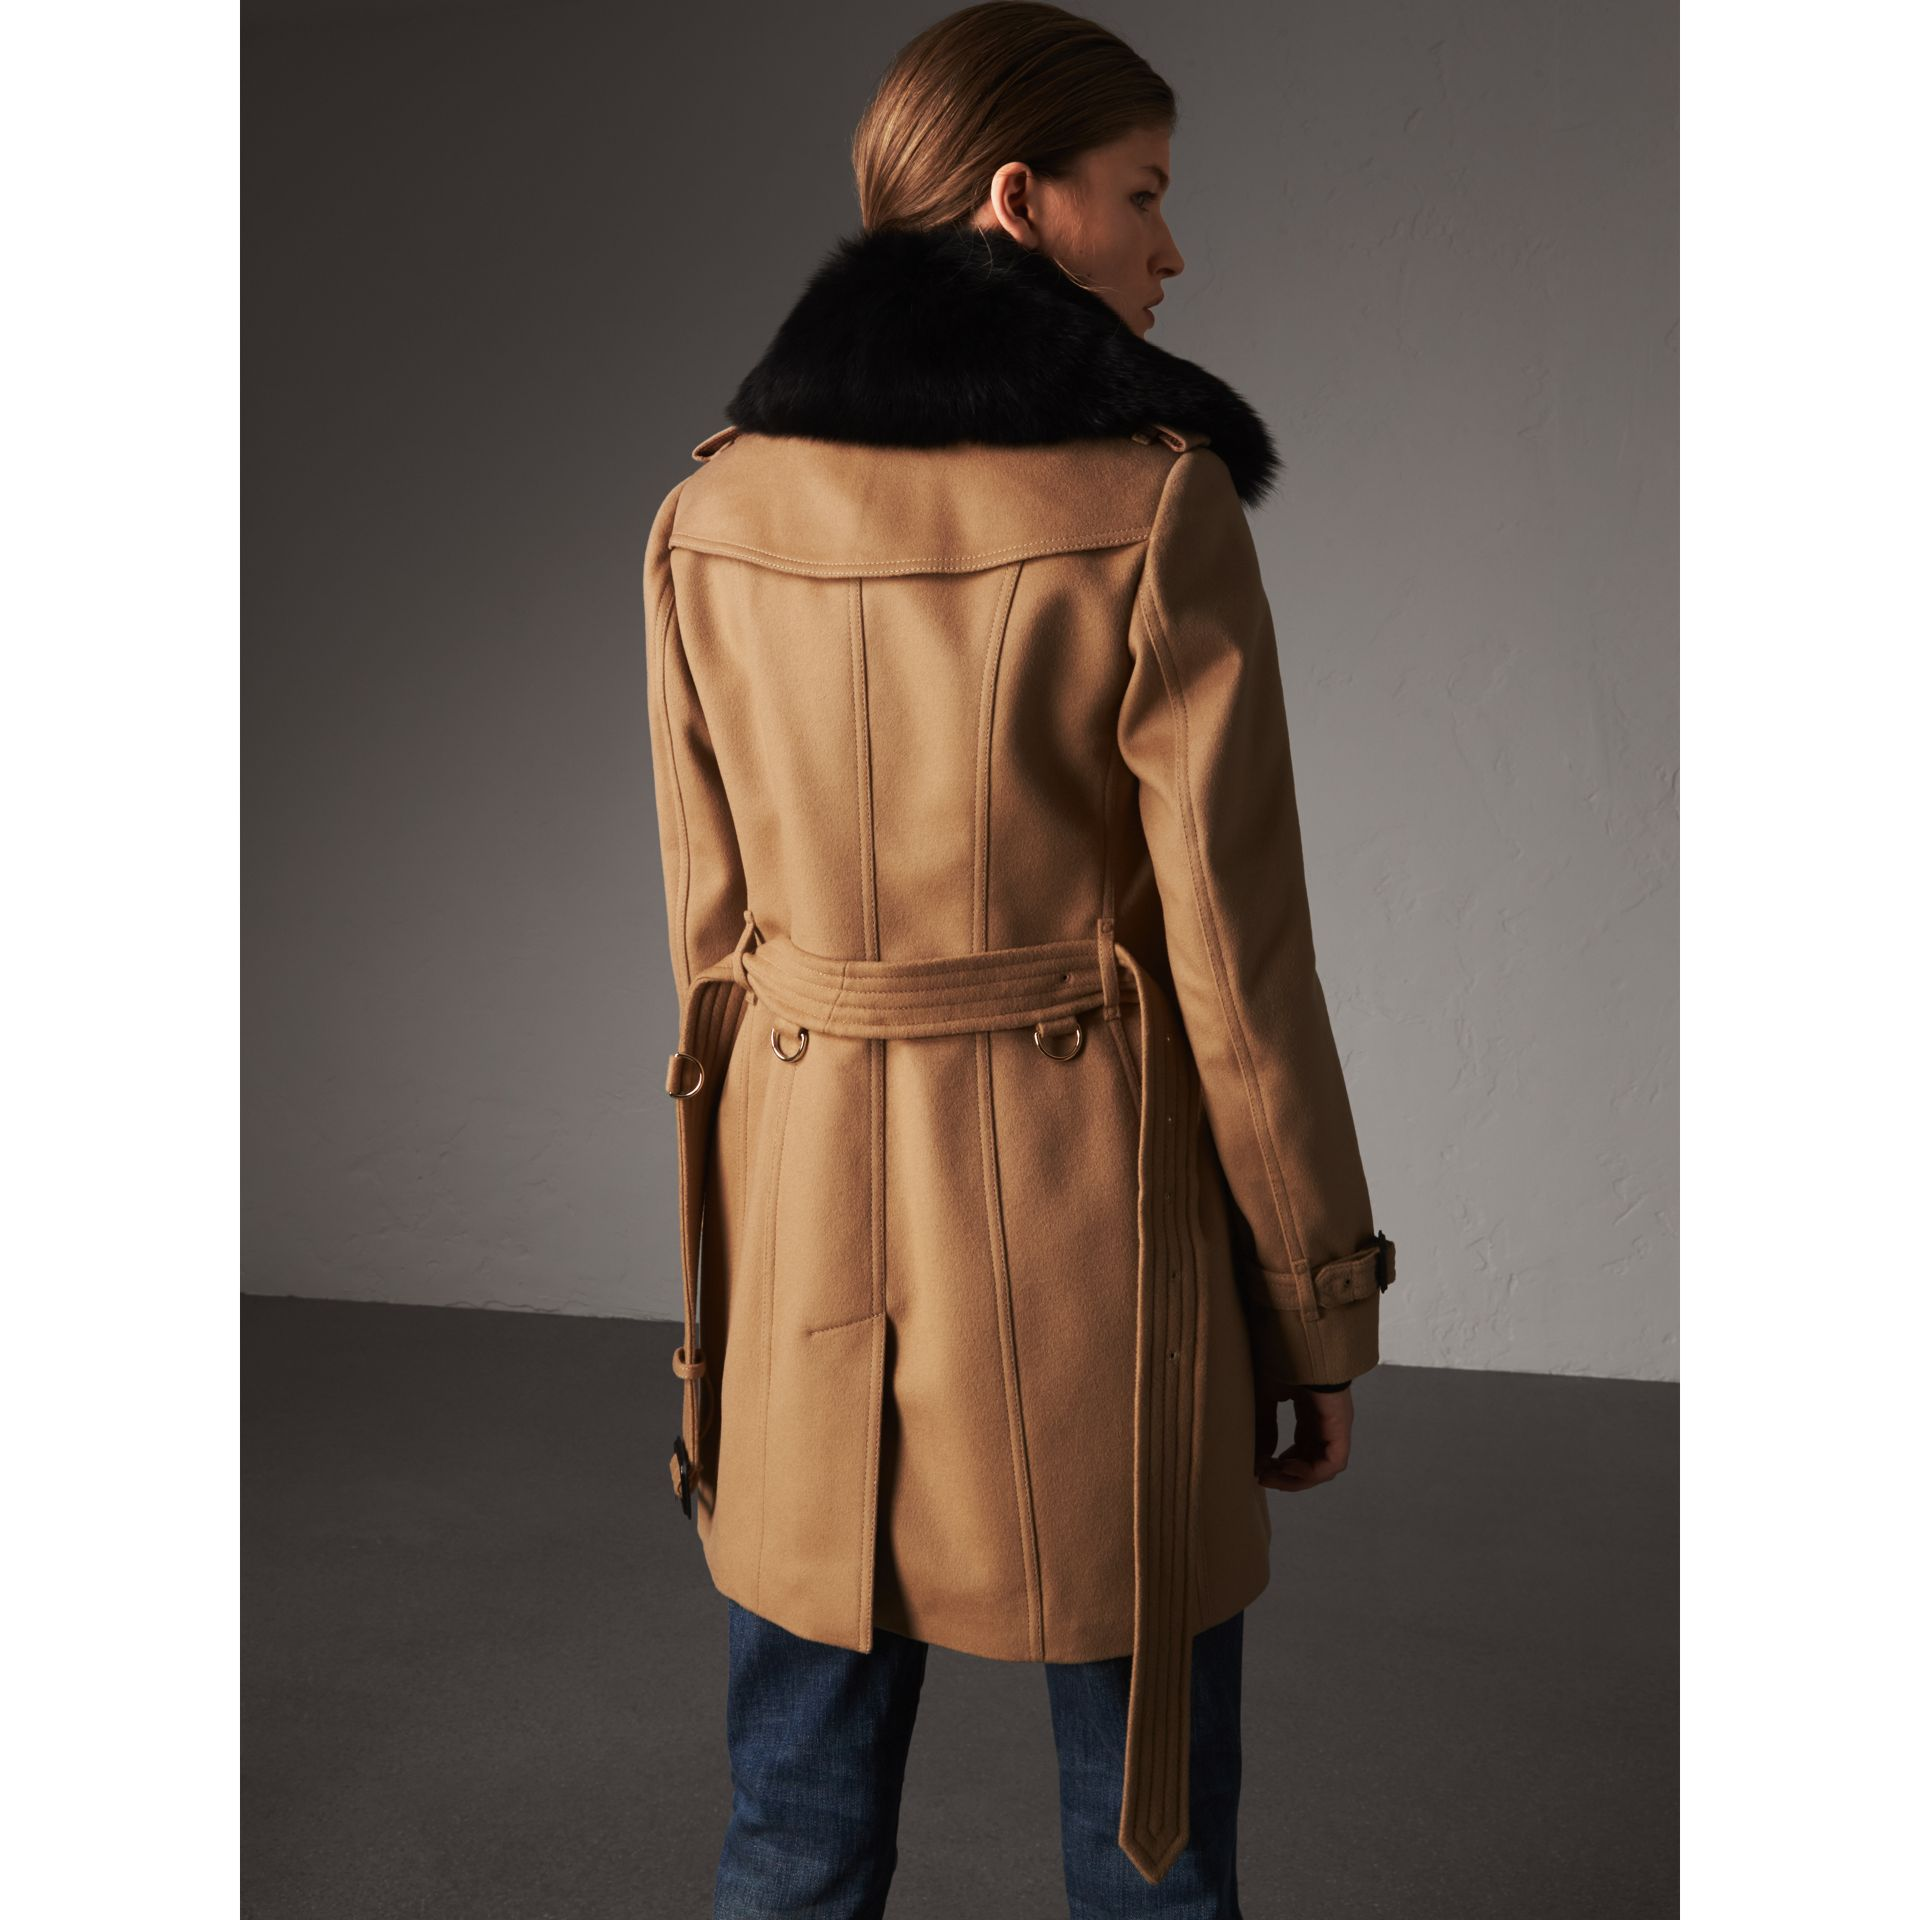 Wool Cashmere Trench Coat with Fur Collar in Camel - Women | Burberry United Kingdom - gallery image 2